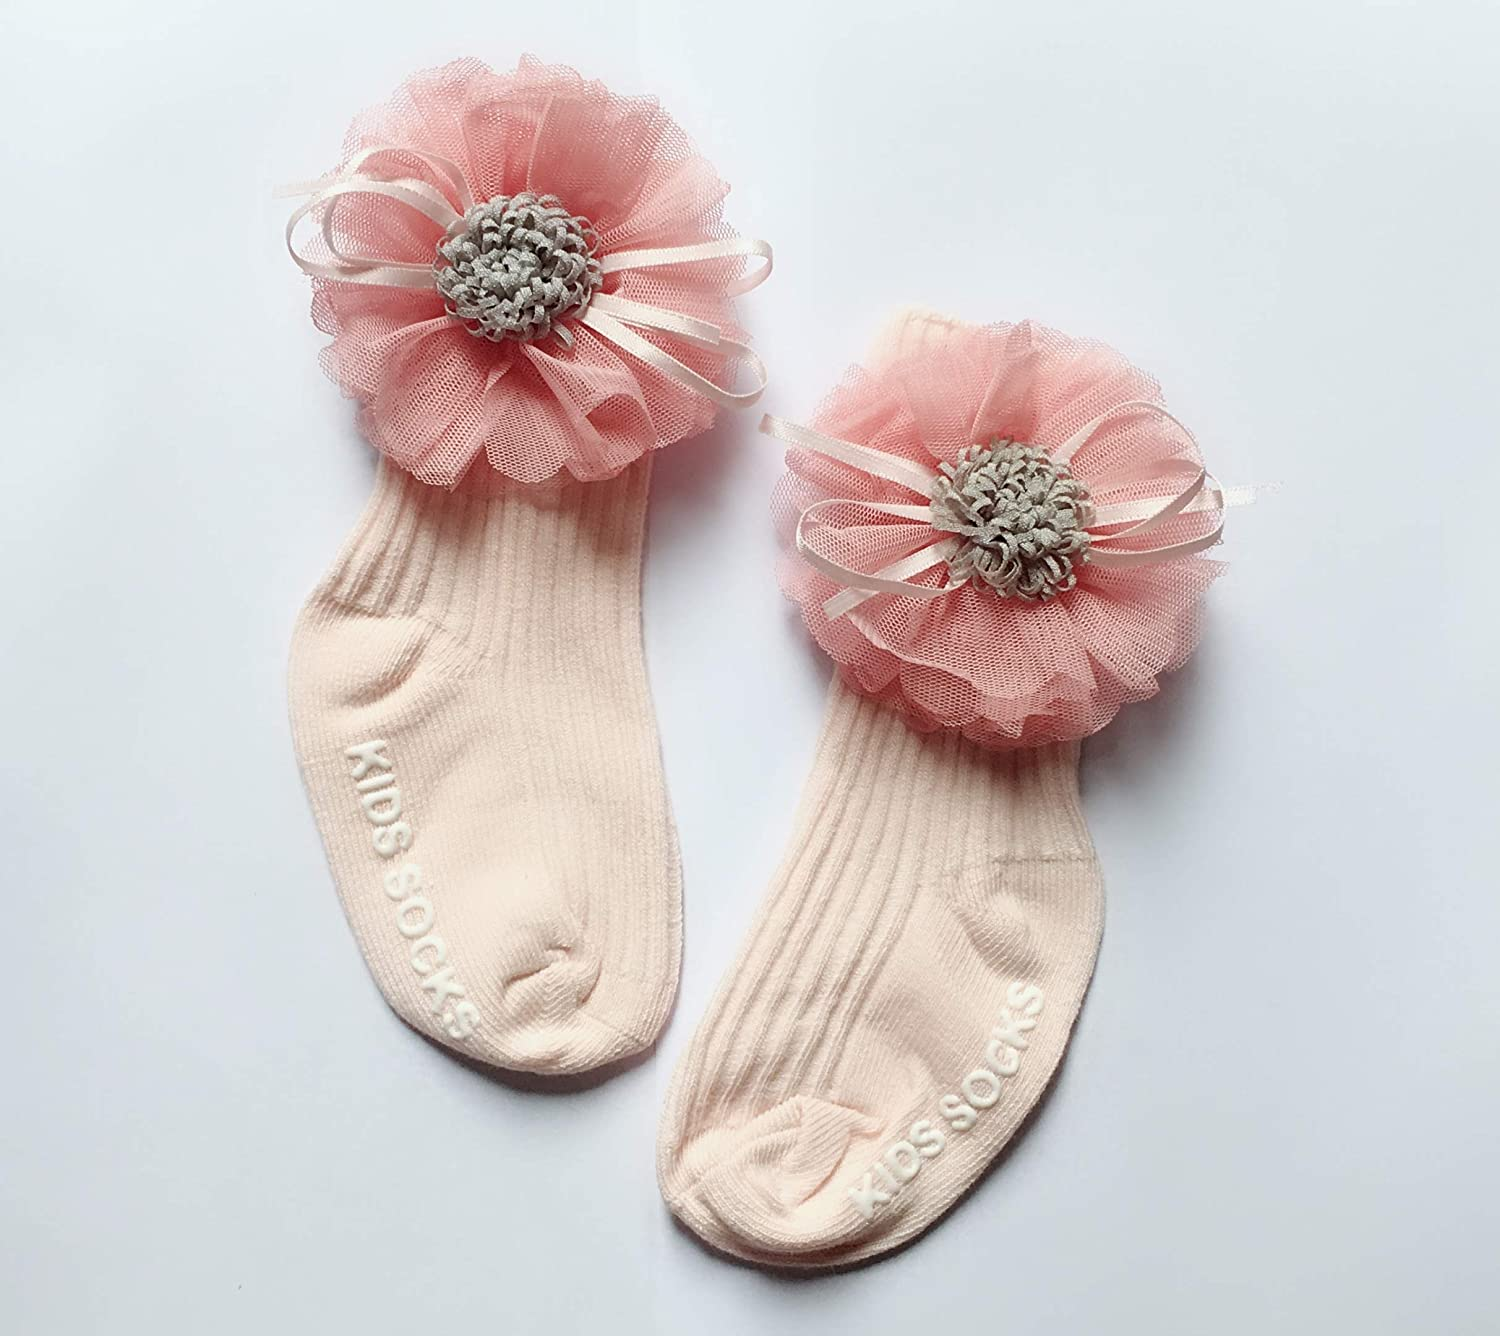 Vincecilia Little Girls for 0-4 years Flower Bowknot Princess Cotton Socks